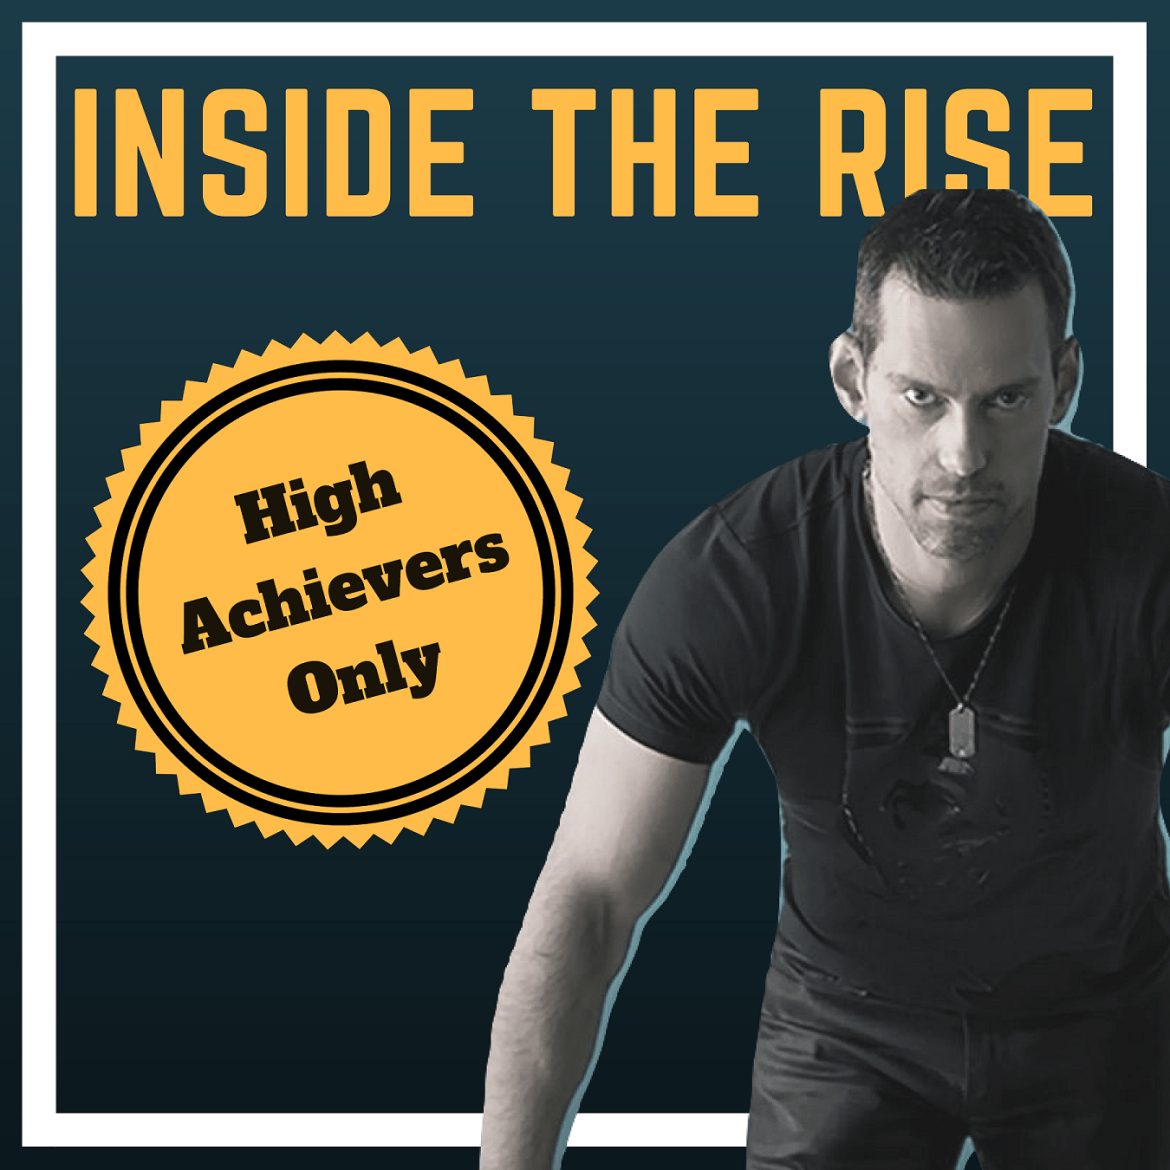 The interview just before Quest Nutrition founder Tom Bilyeu started Impact Theory - he explains how to build your identify to create the life you've always wanted on Inside The Rise Podcast with JC Cross